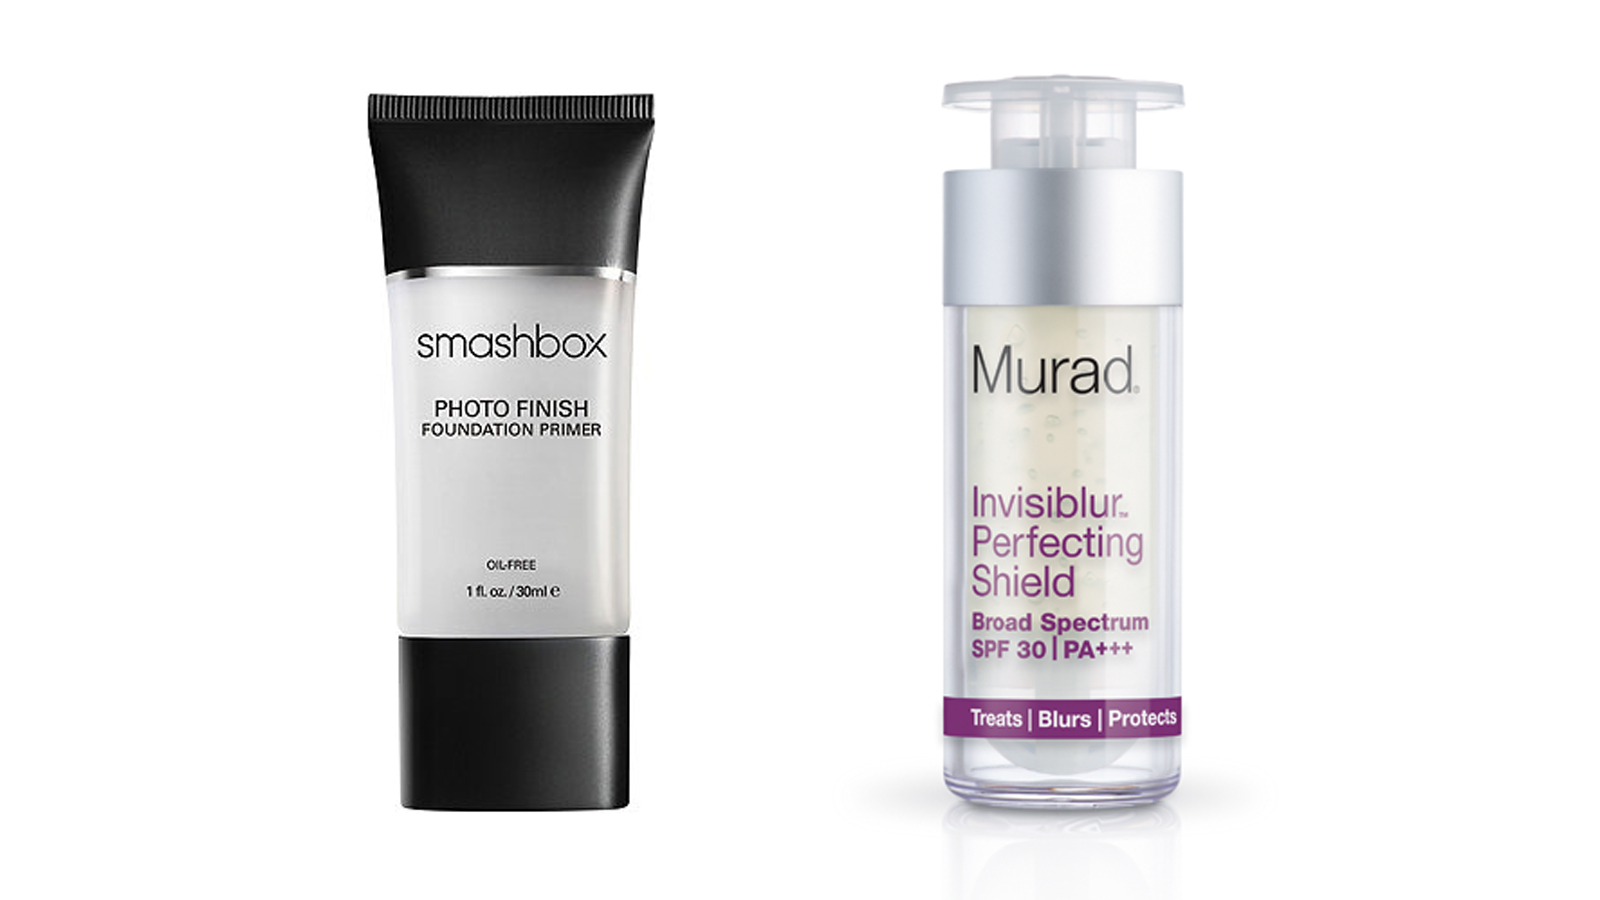 Smashbox Photo Finish Foundation Primer and Murad Invisiblur Perfecting Shield